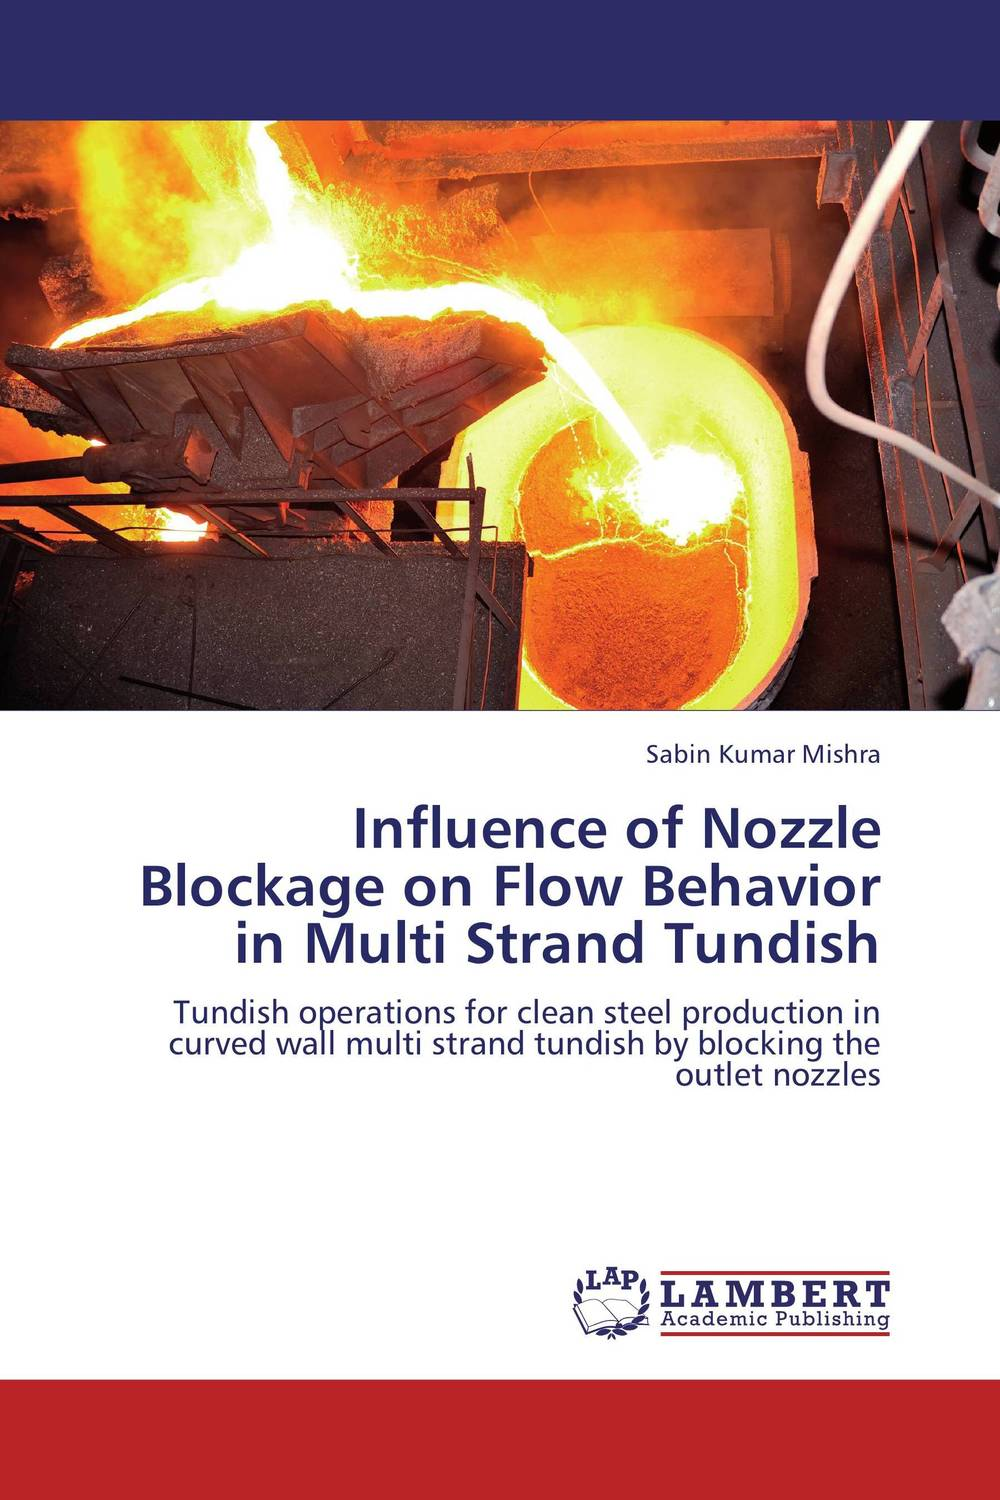 Influence of Nozzle Blockage on Flow Behavior in Multi Strand Tundish the influence of fire and elevated temperature on nec hsc and uhsc